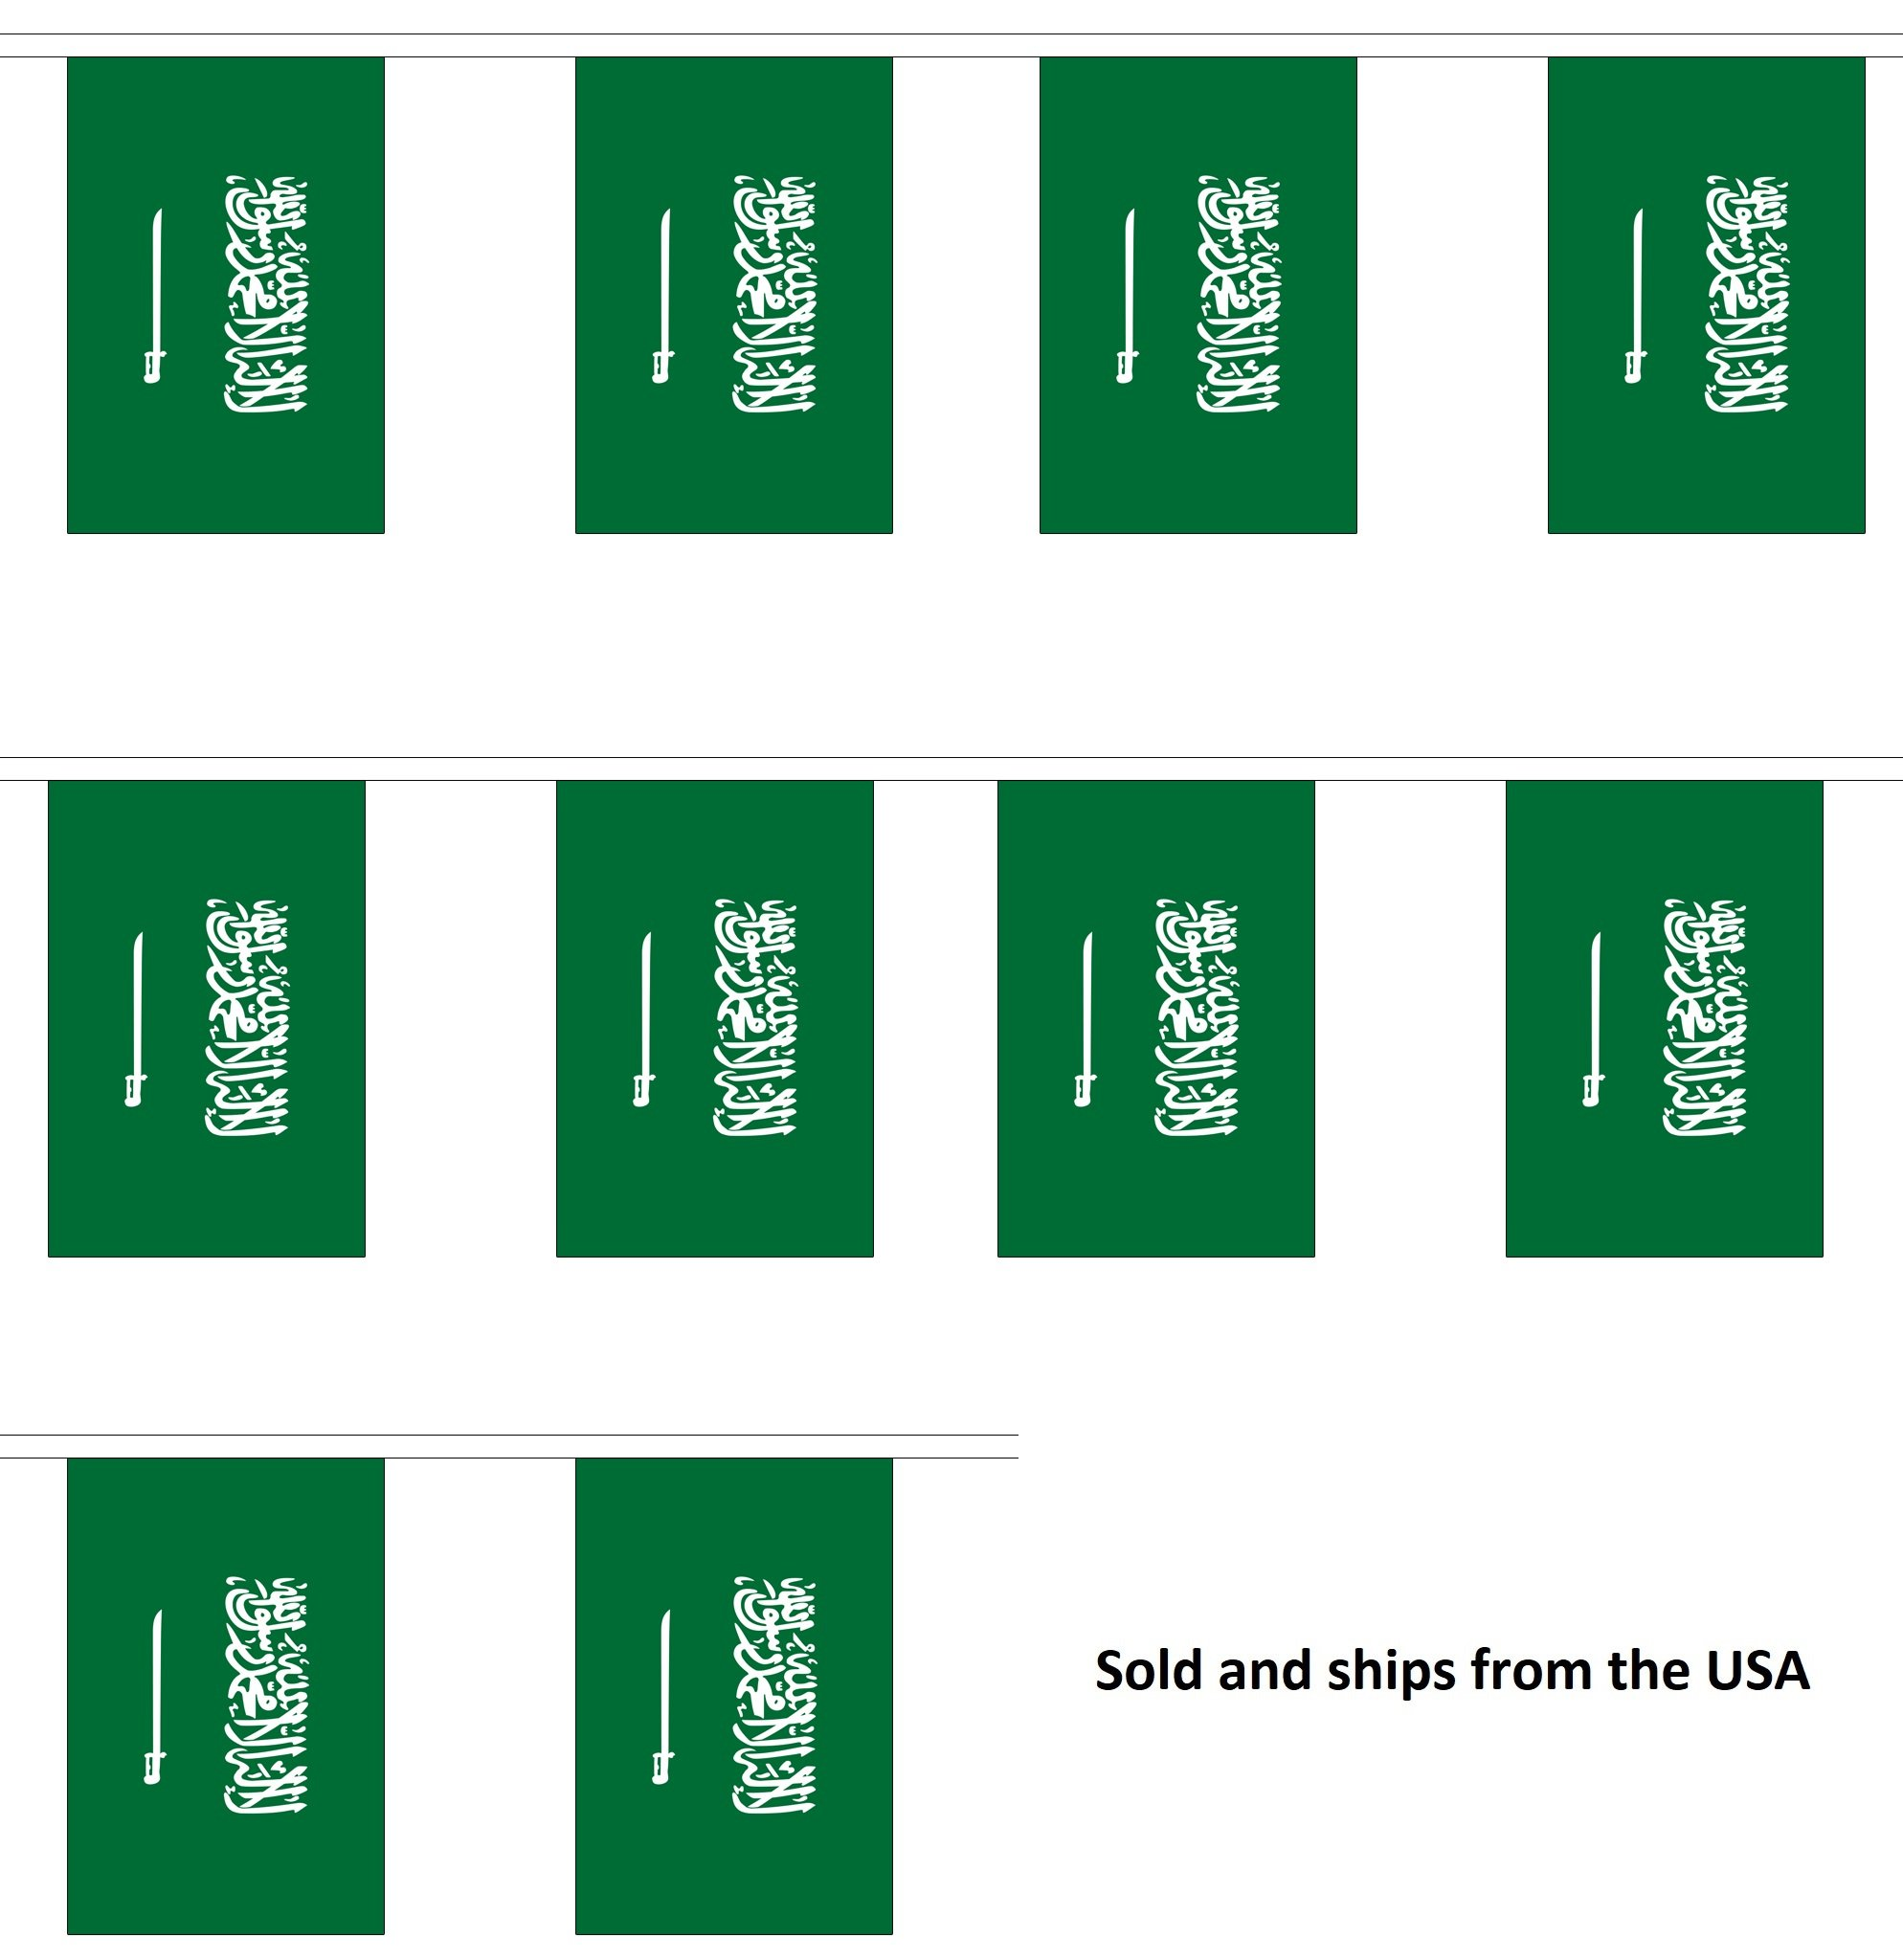 30' Saudi Arabia String Flag Party Bunting Has 30 Arabian 6''x9'' Polyester Banner Flags Attached, Popular For School Classroom, Special Events, Bars, Restaurants, Country Theme Parties